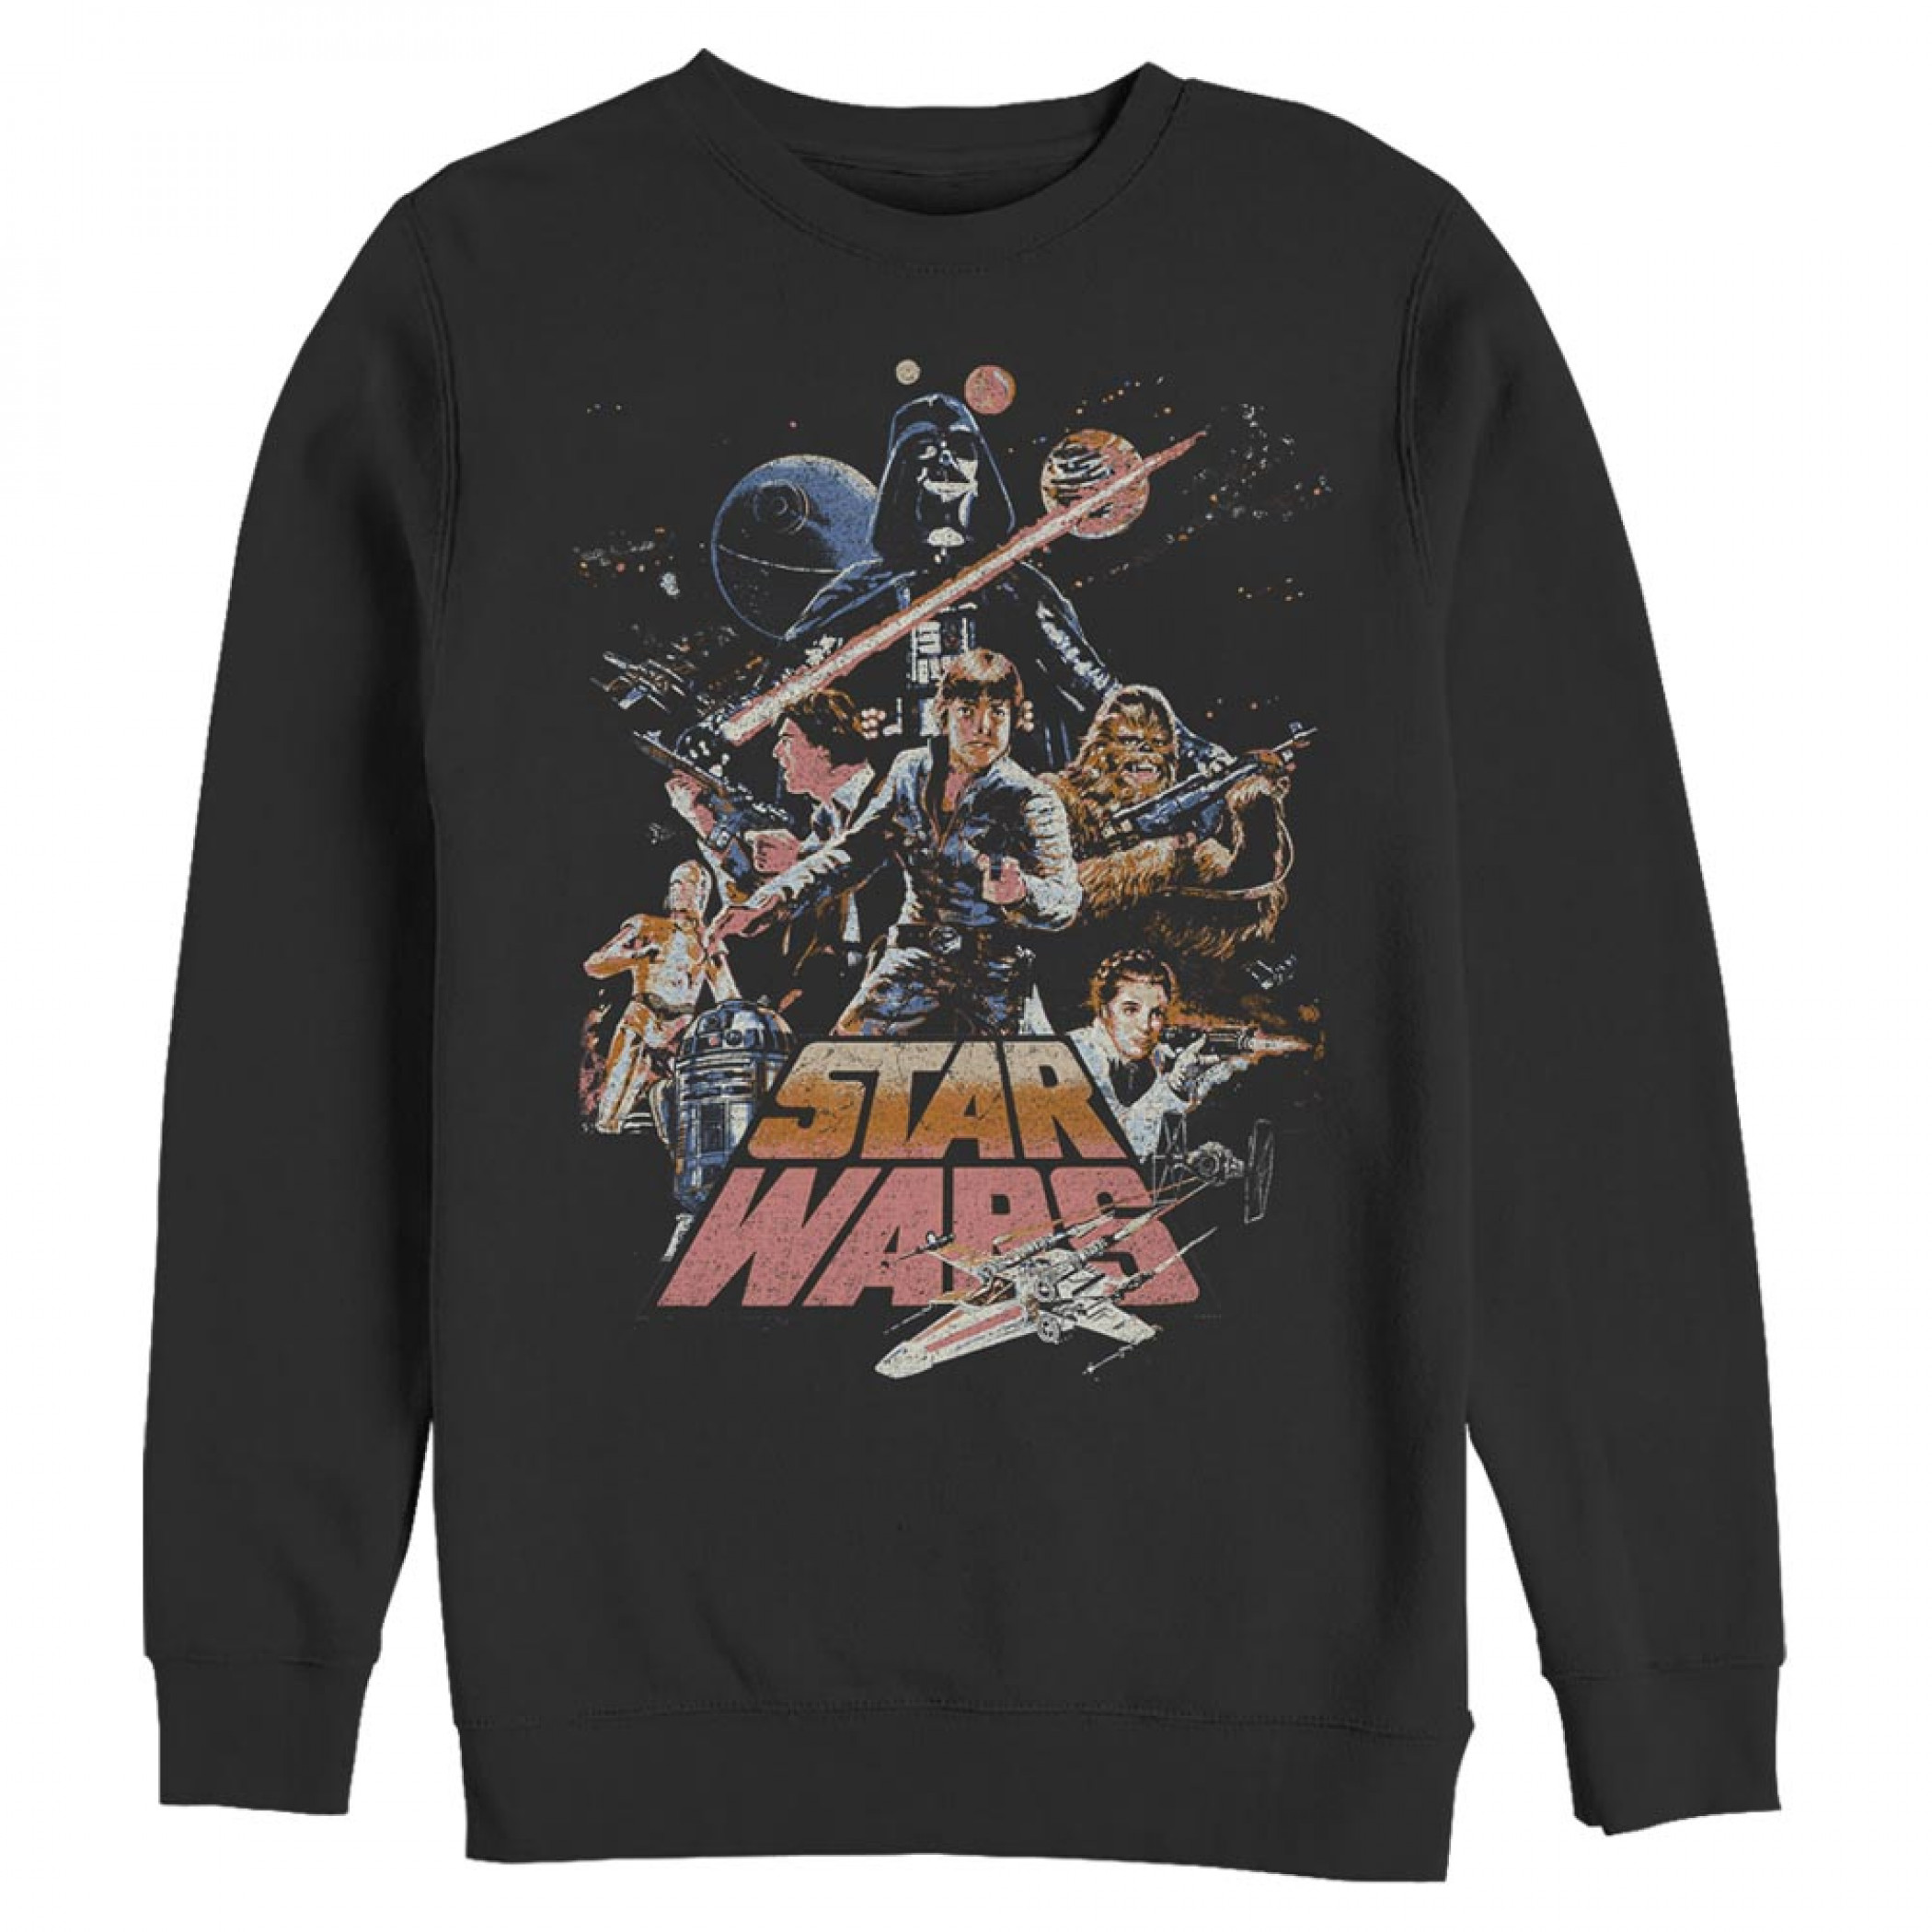 Star Wars Retro Poster Crewneck Sweatshirt